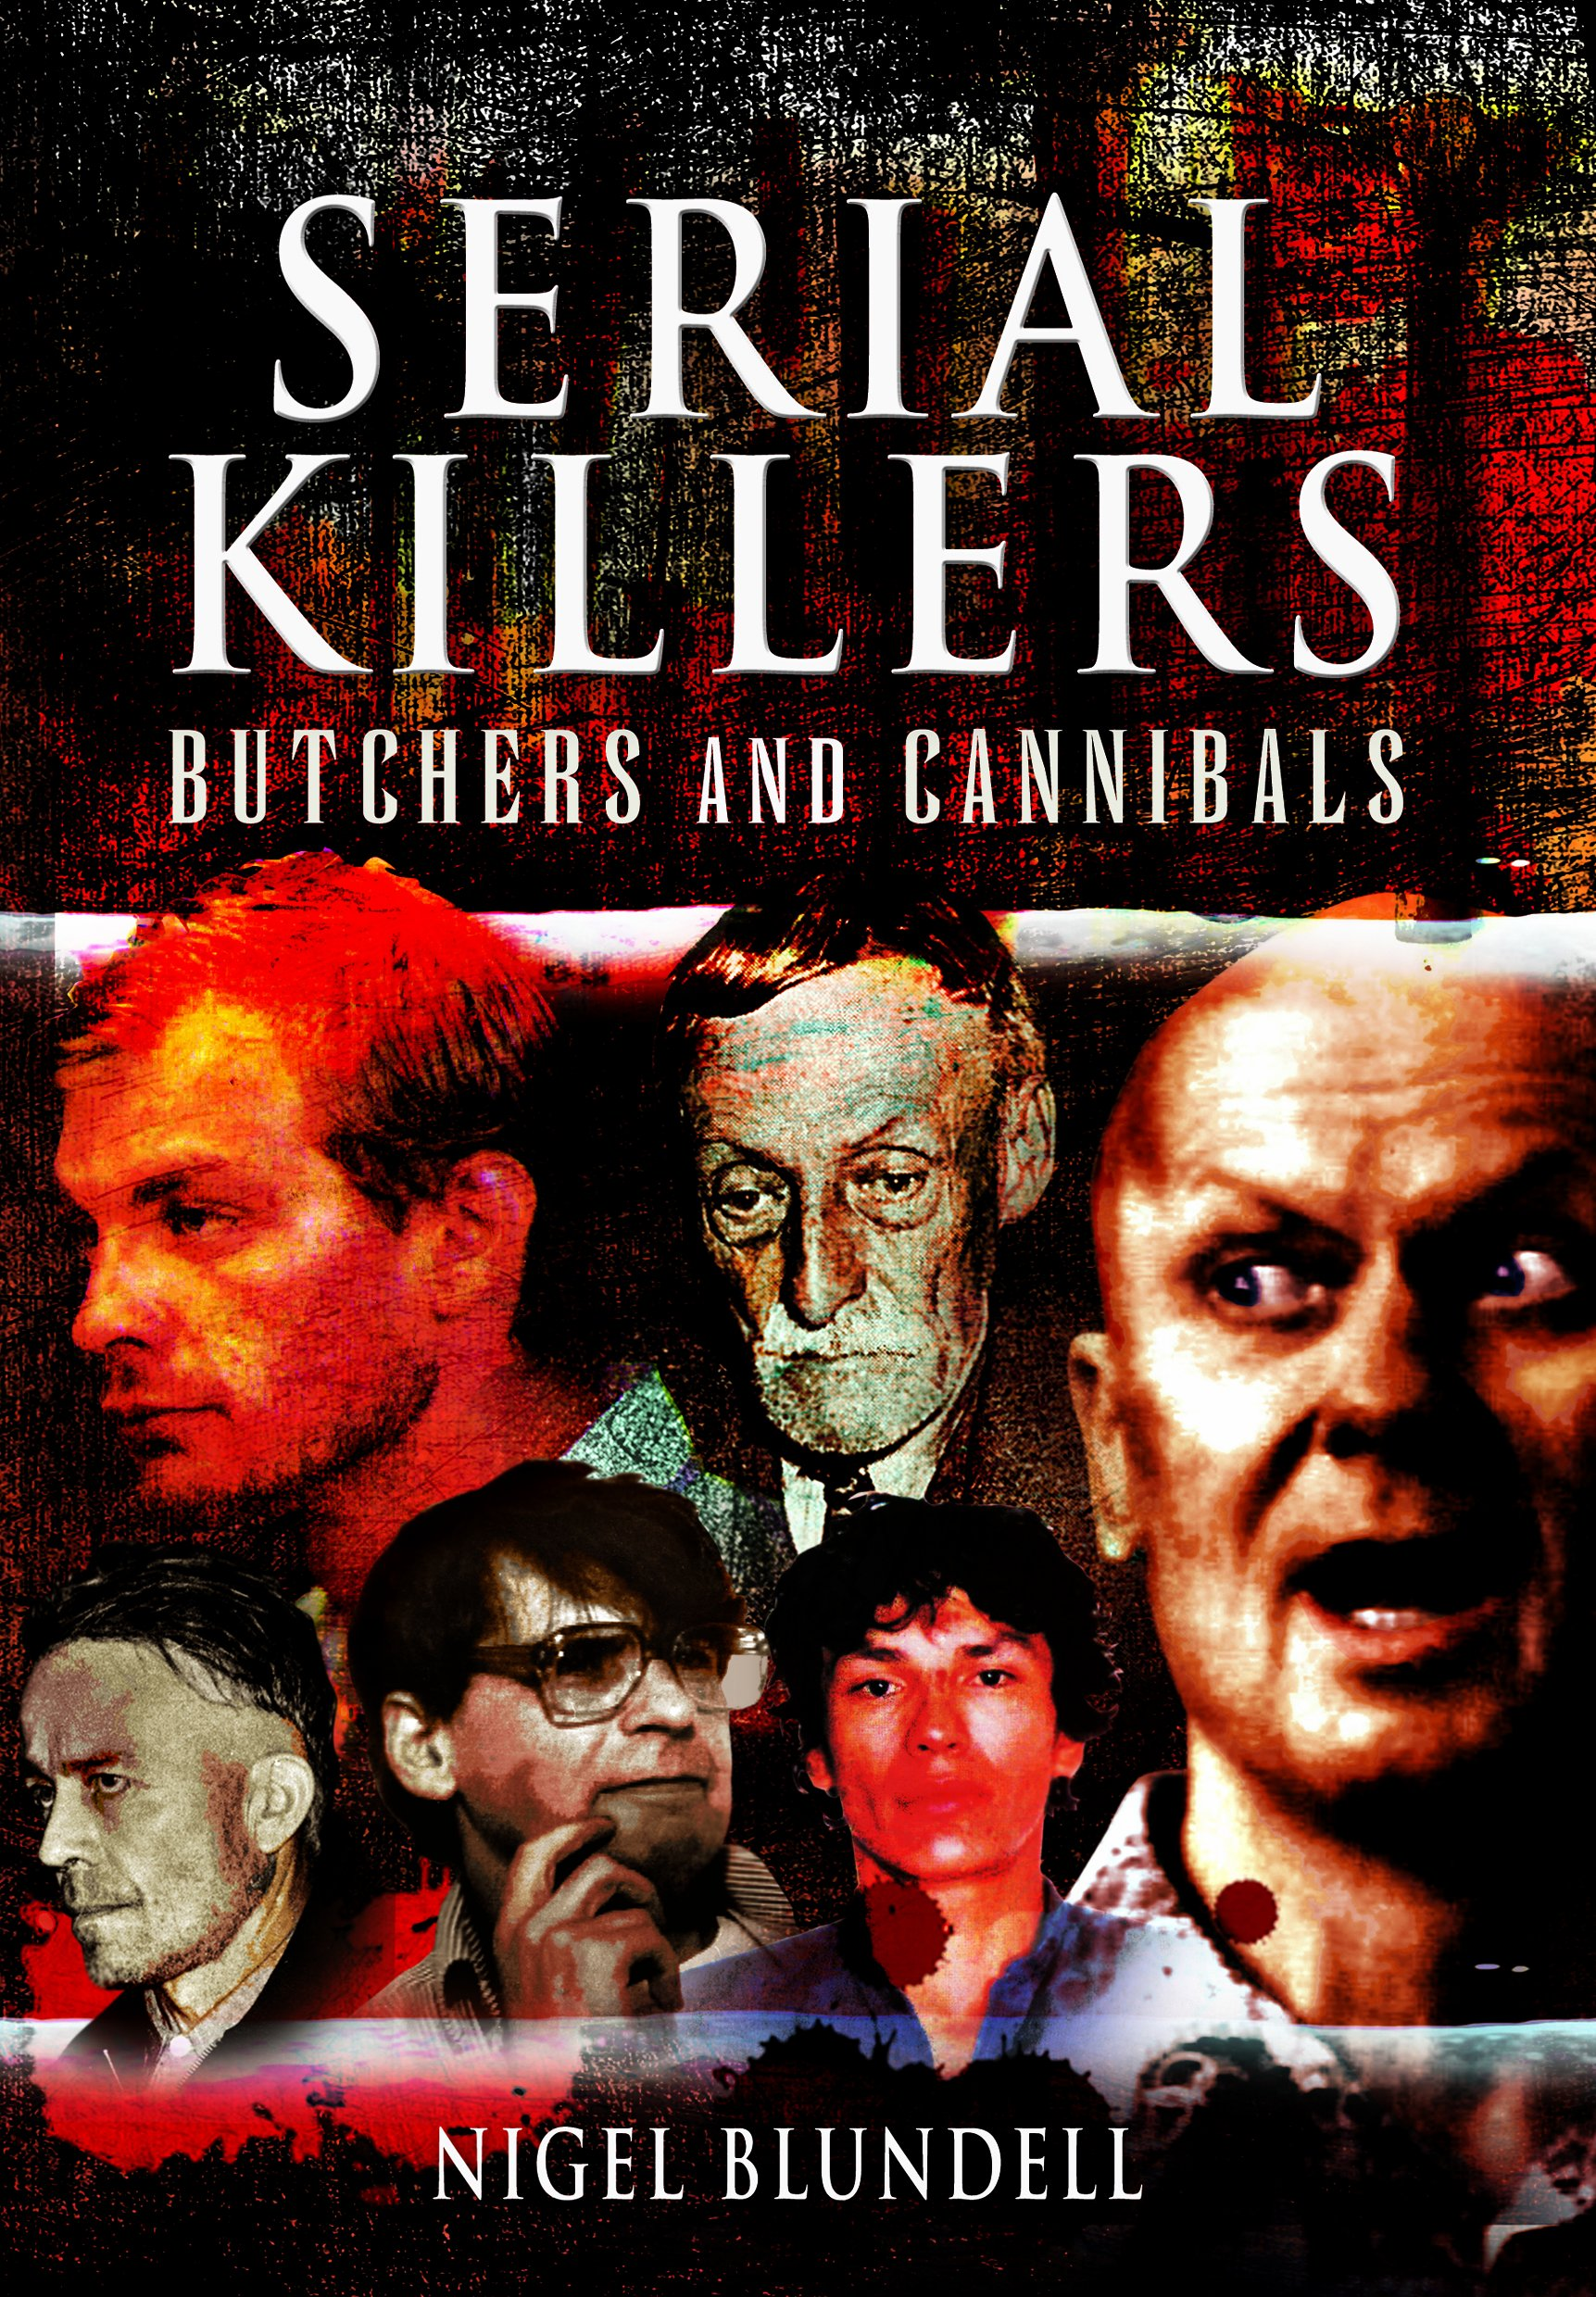 Serial Killers: Butchers and Cannibals: Nigel Blundell